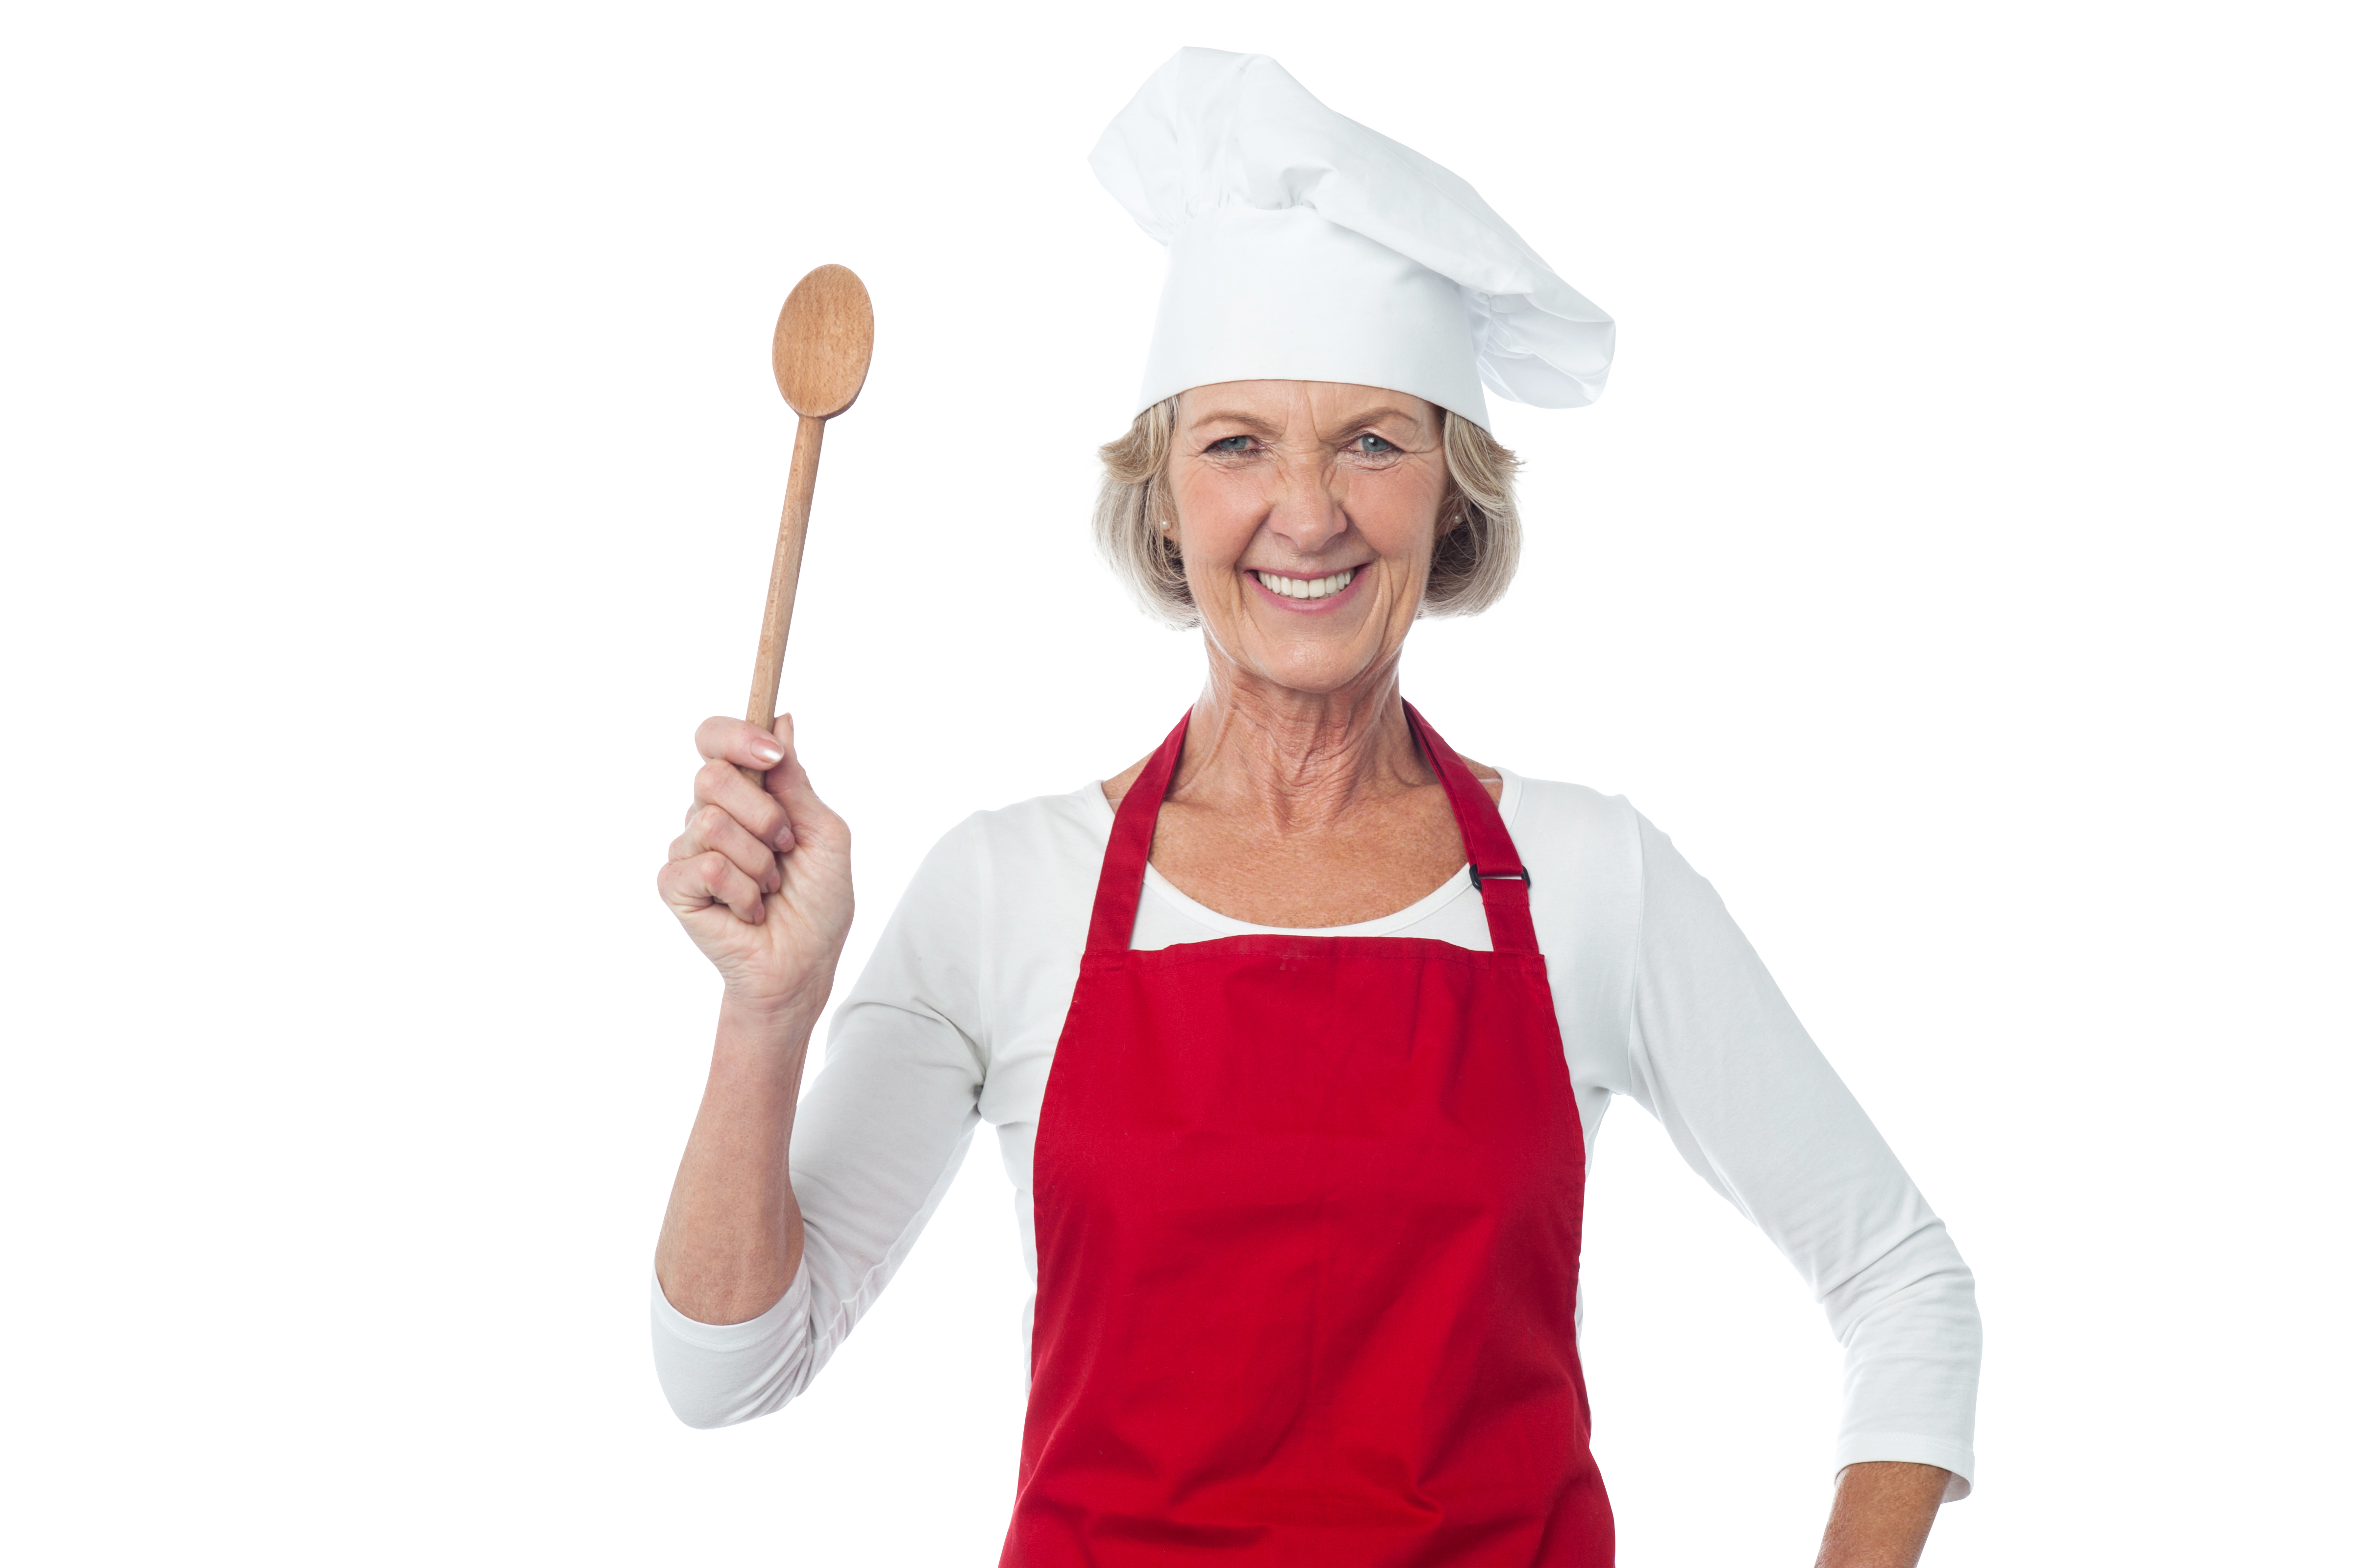 Old woman royalty play. Free png images for commercial use